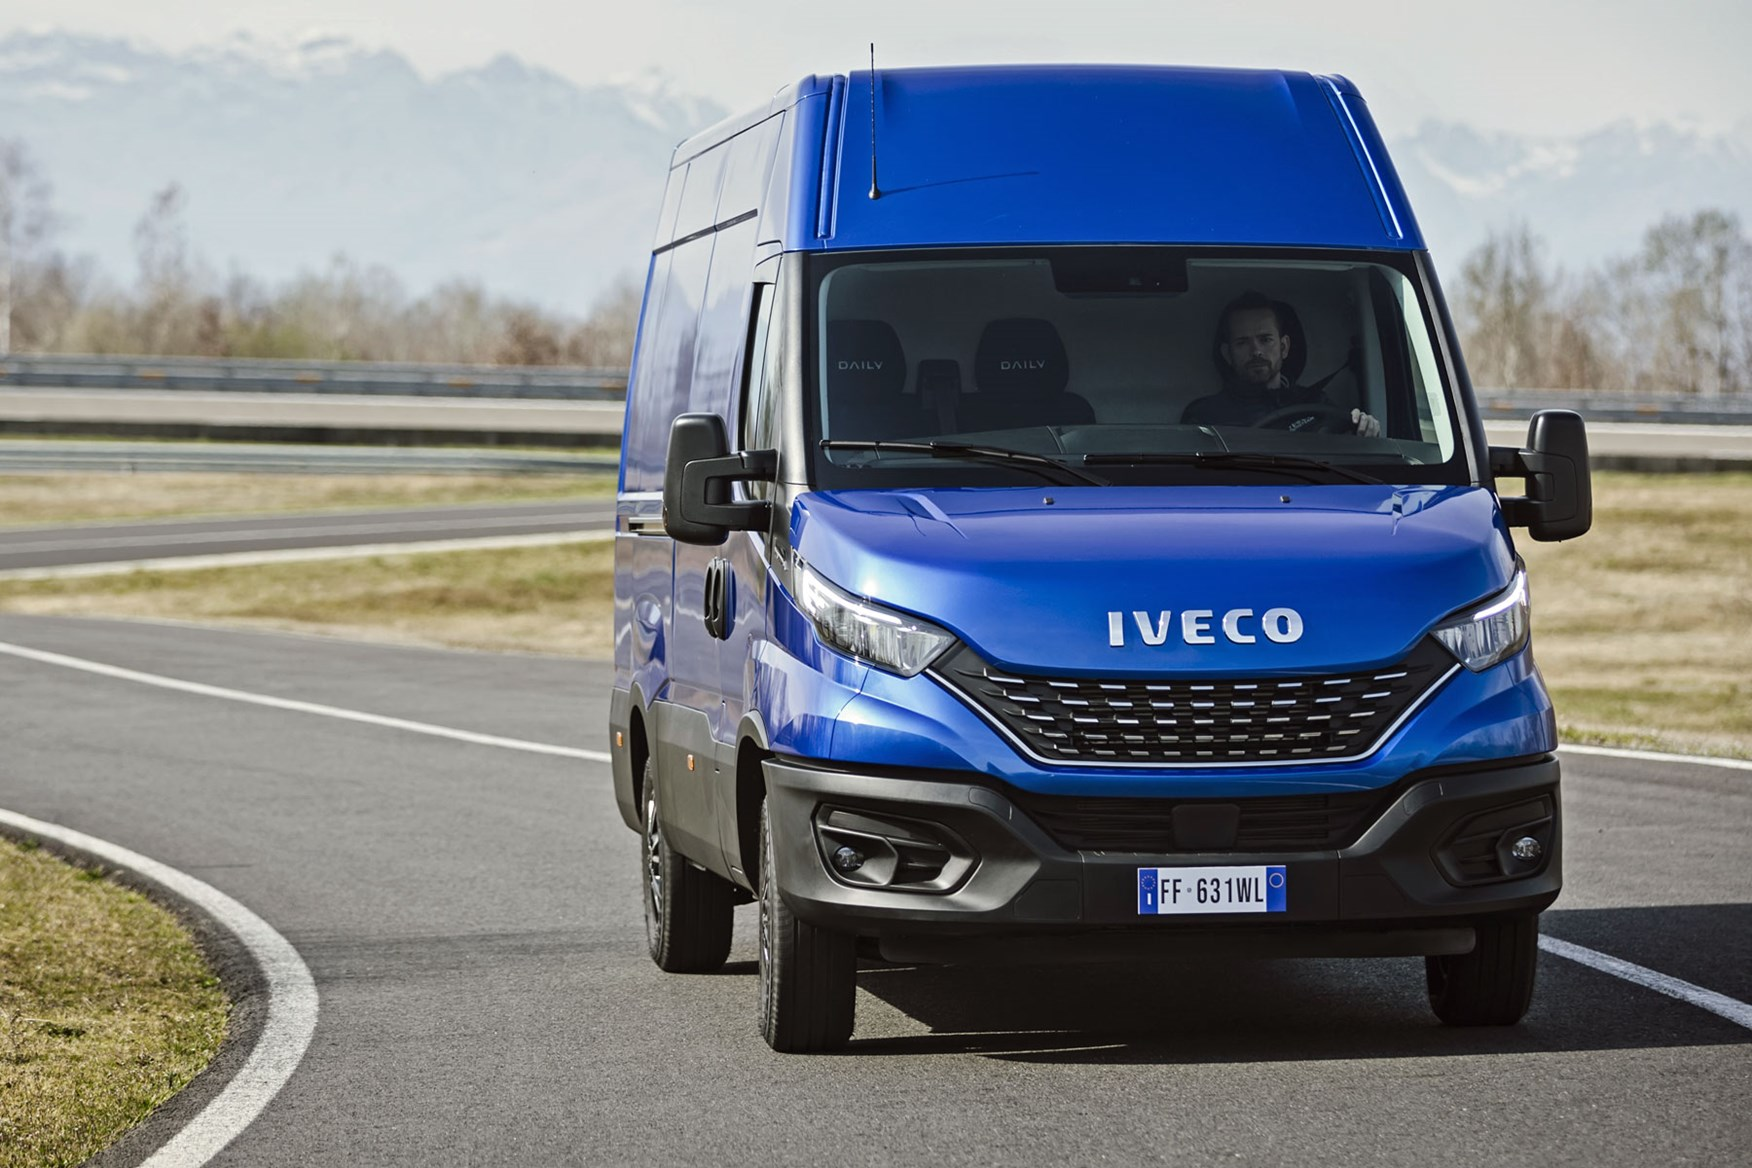 Iveco Daily 2019 review - panel van, blue, front view, driving